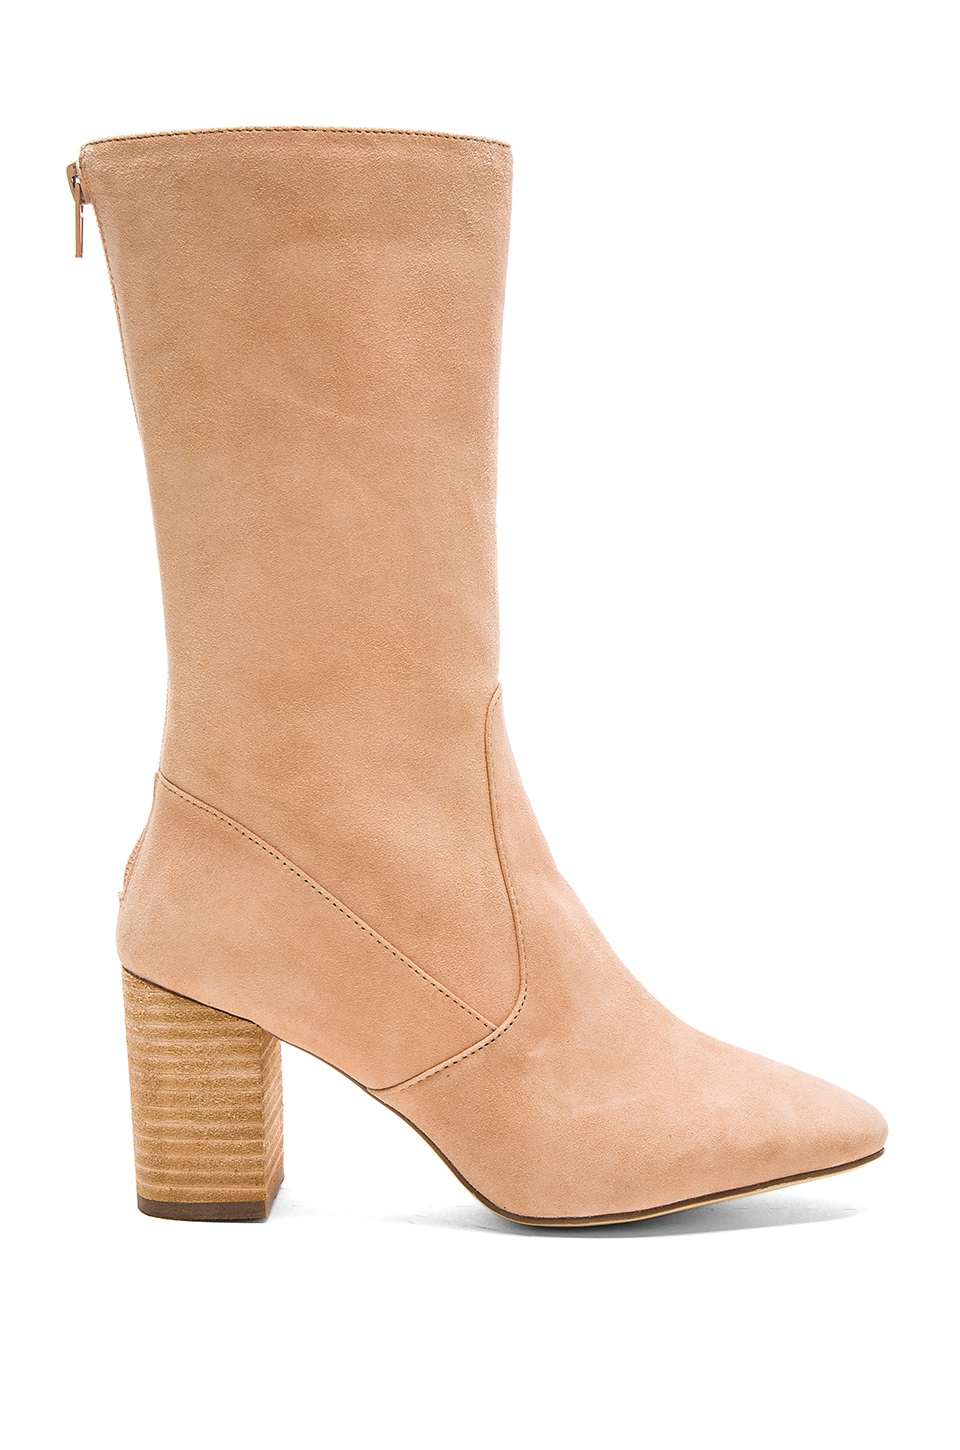 Matisse Babe Boots in Natural